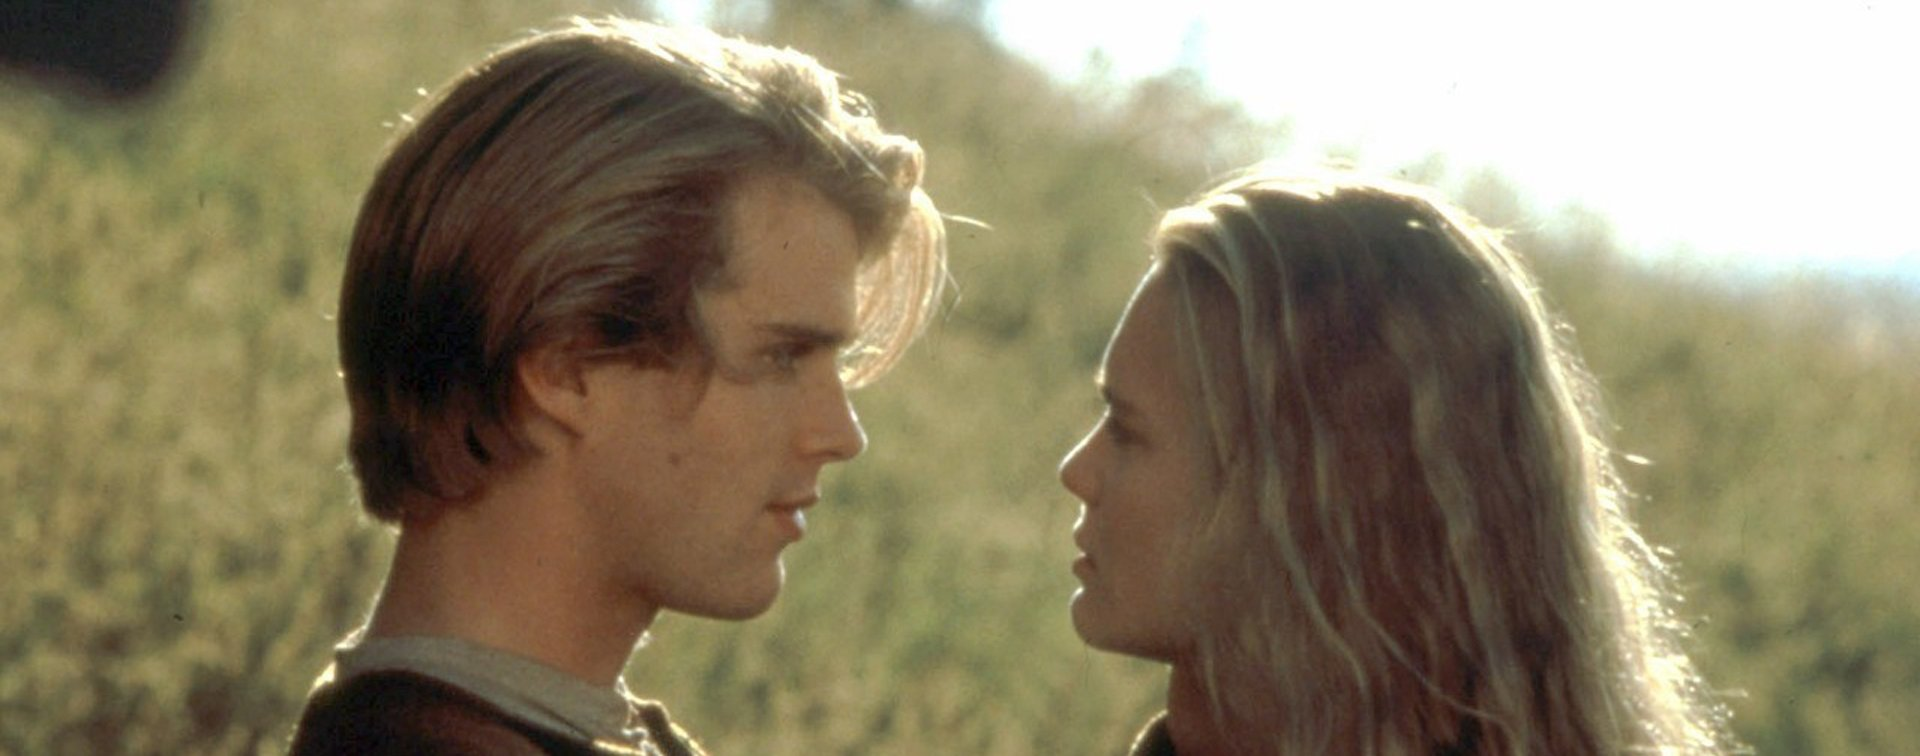 Film: The Princess Bride feature image